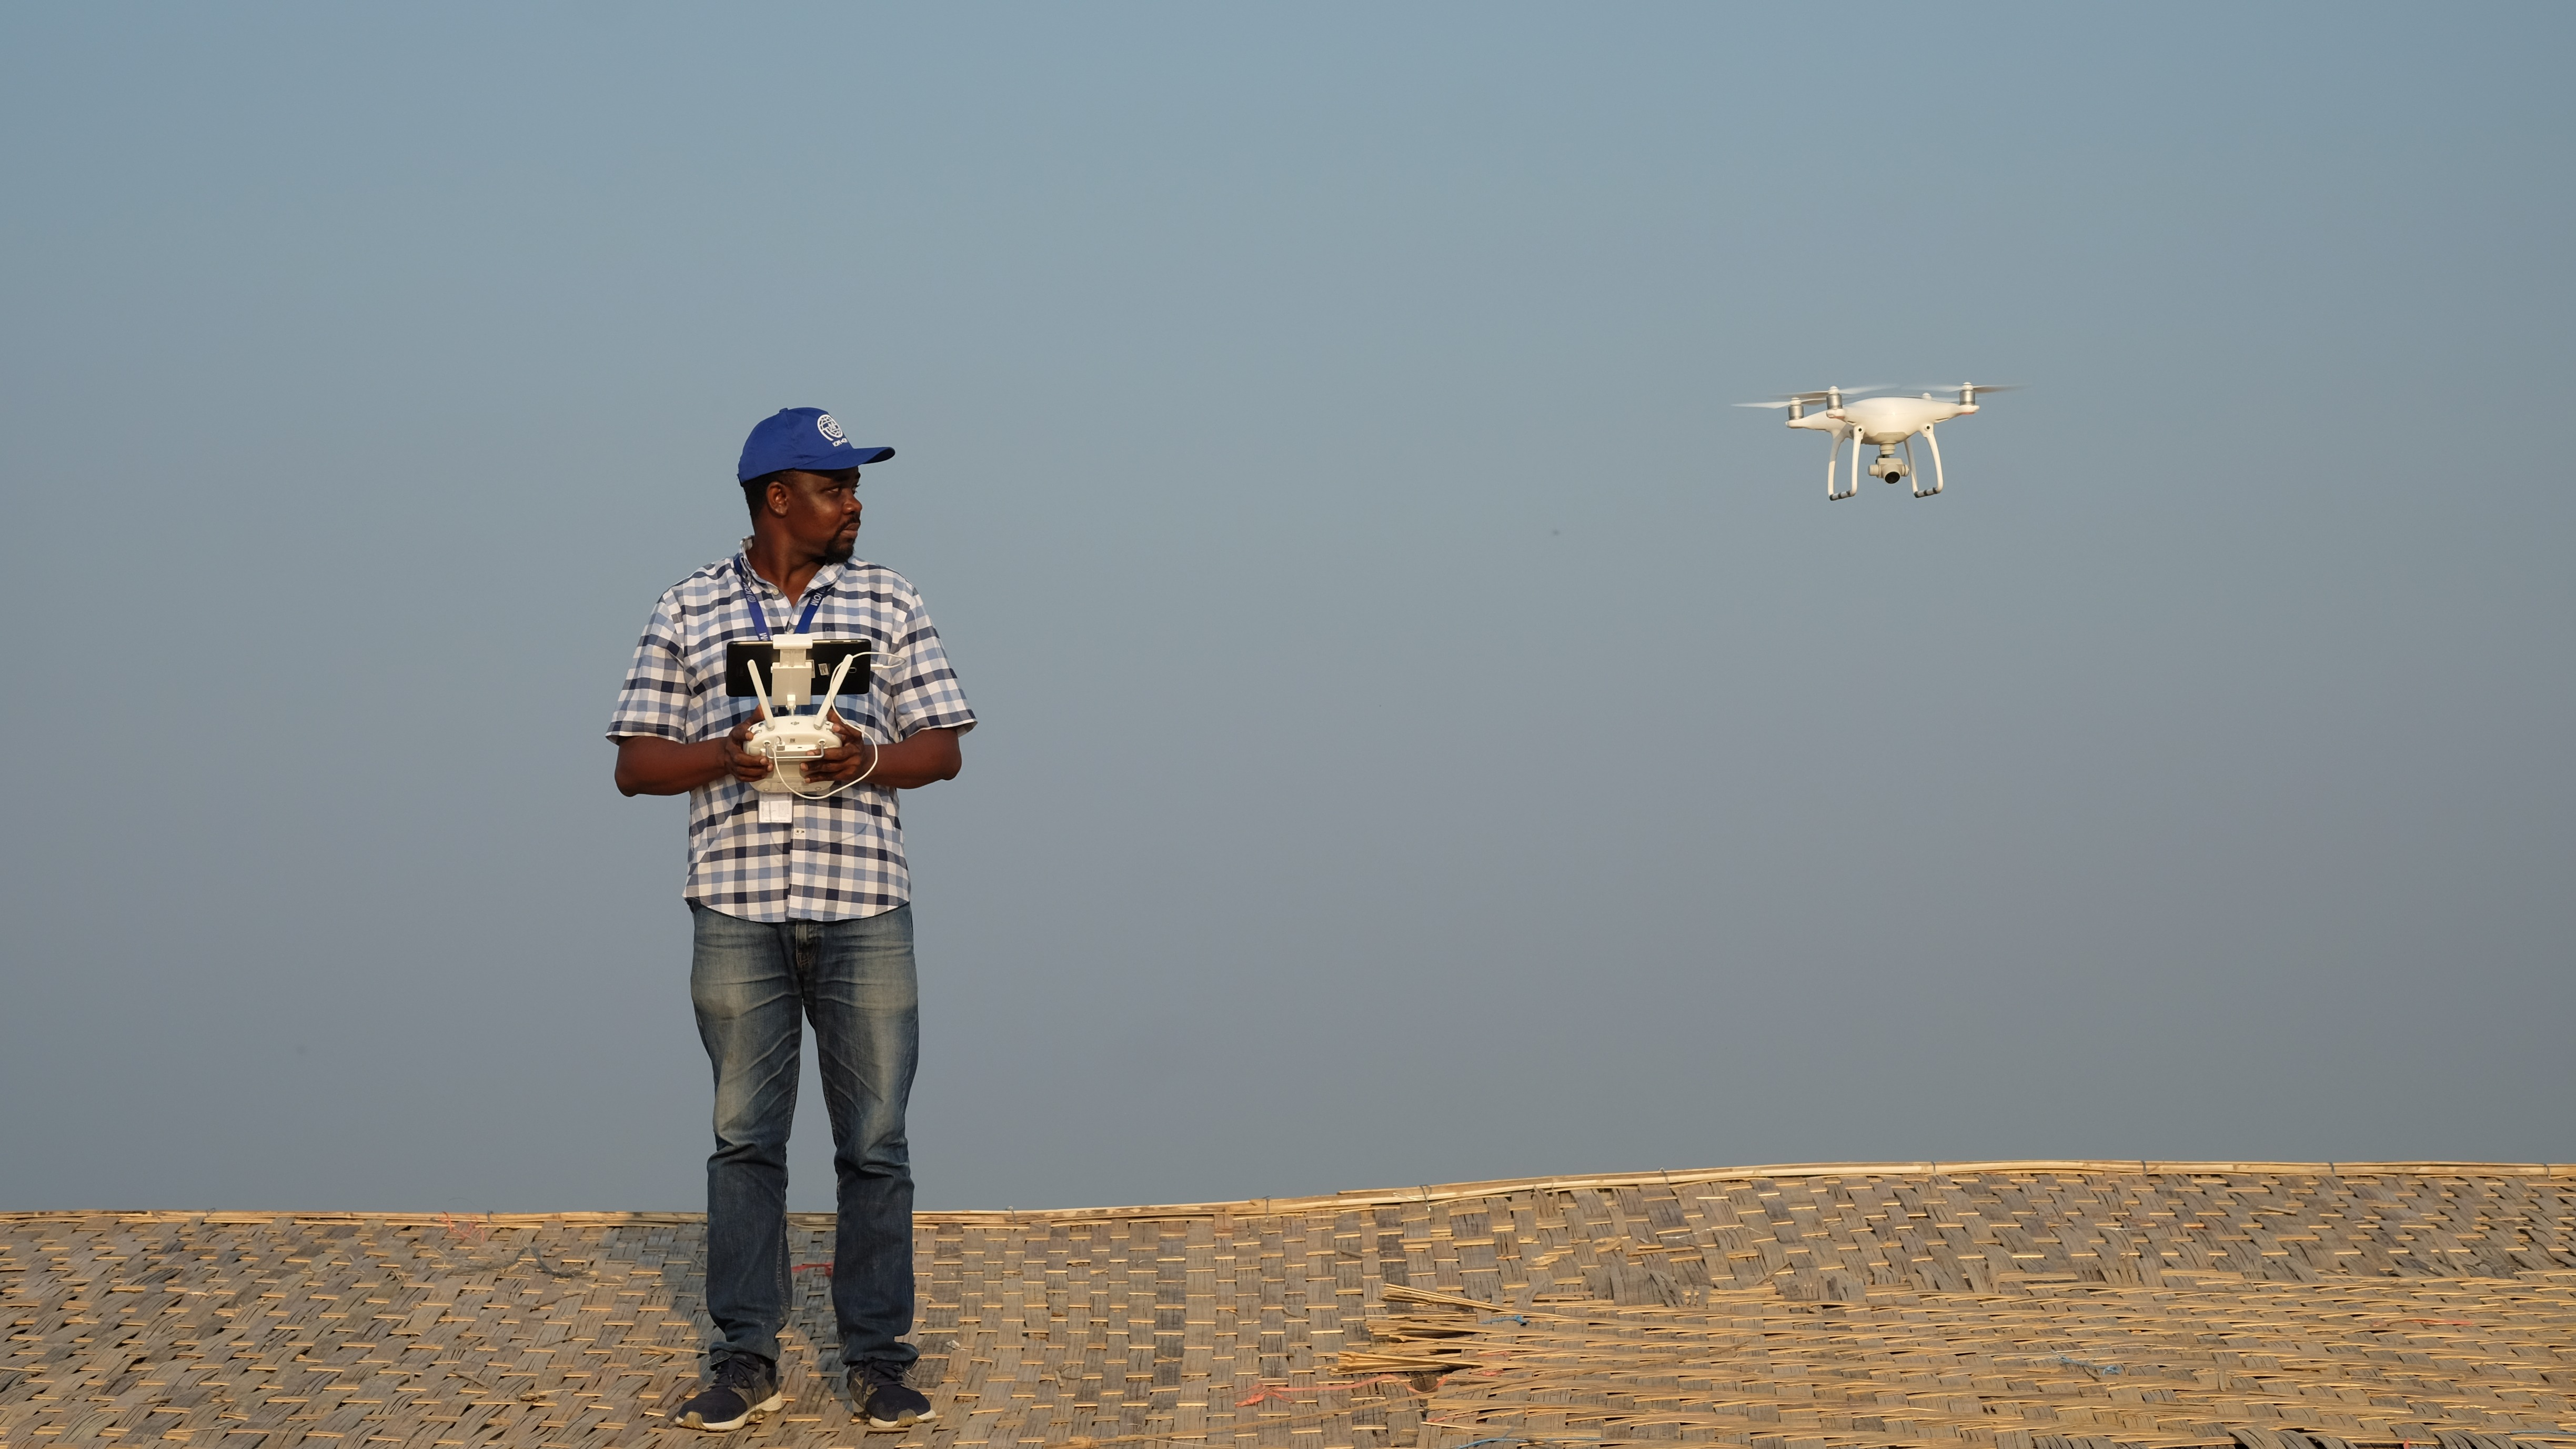 Working with a multiroter drone